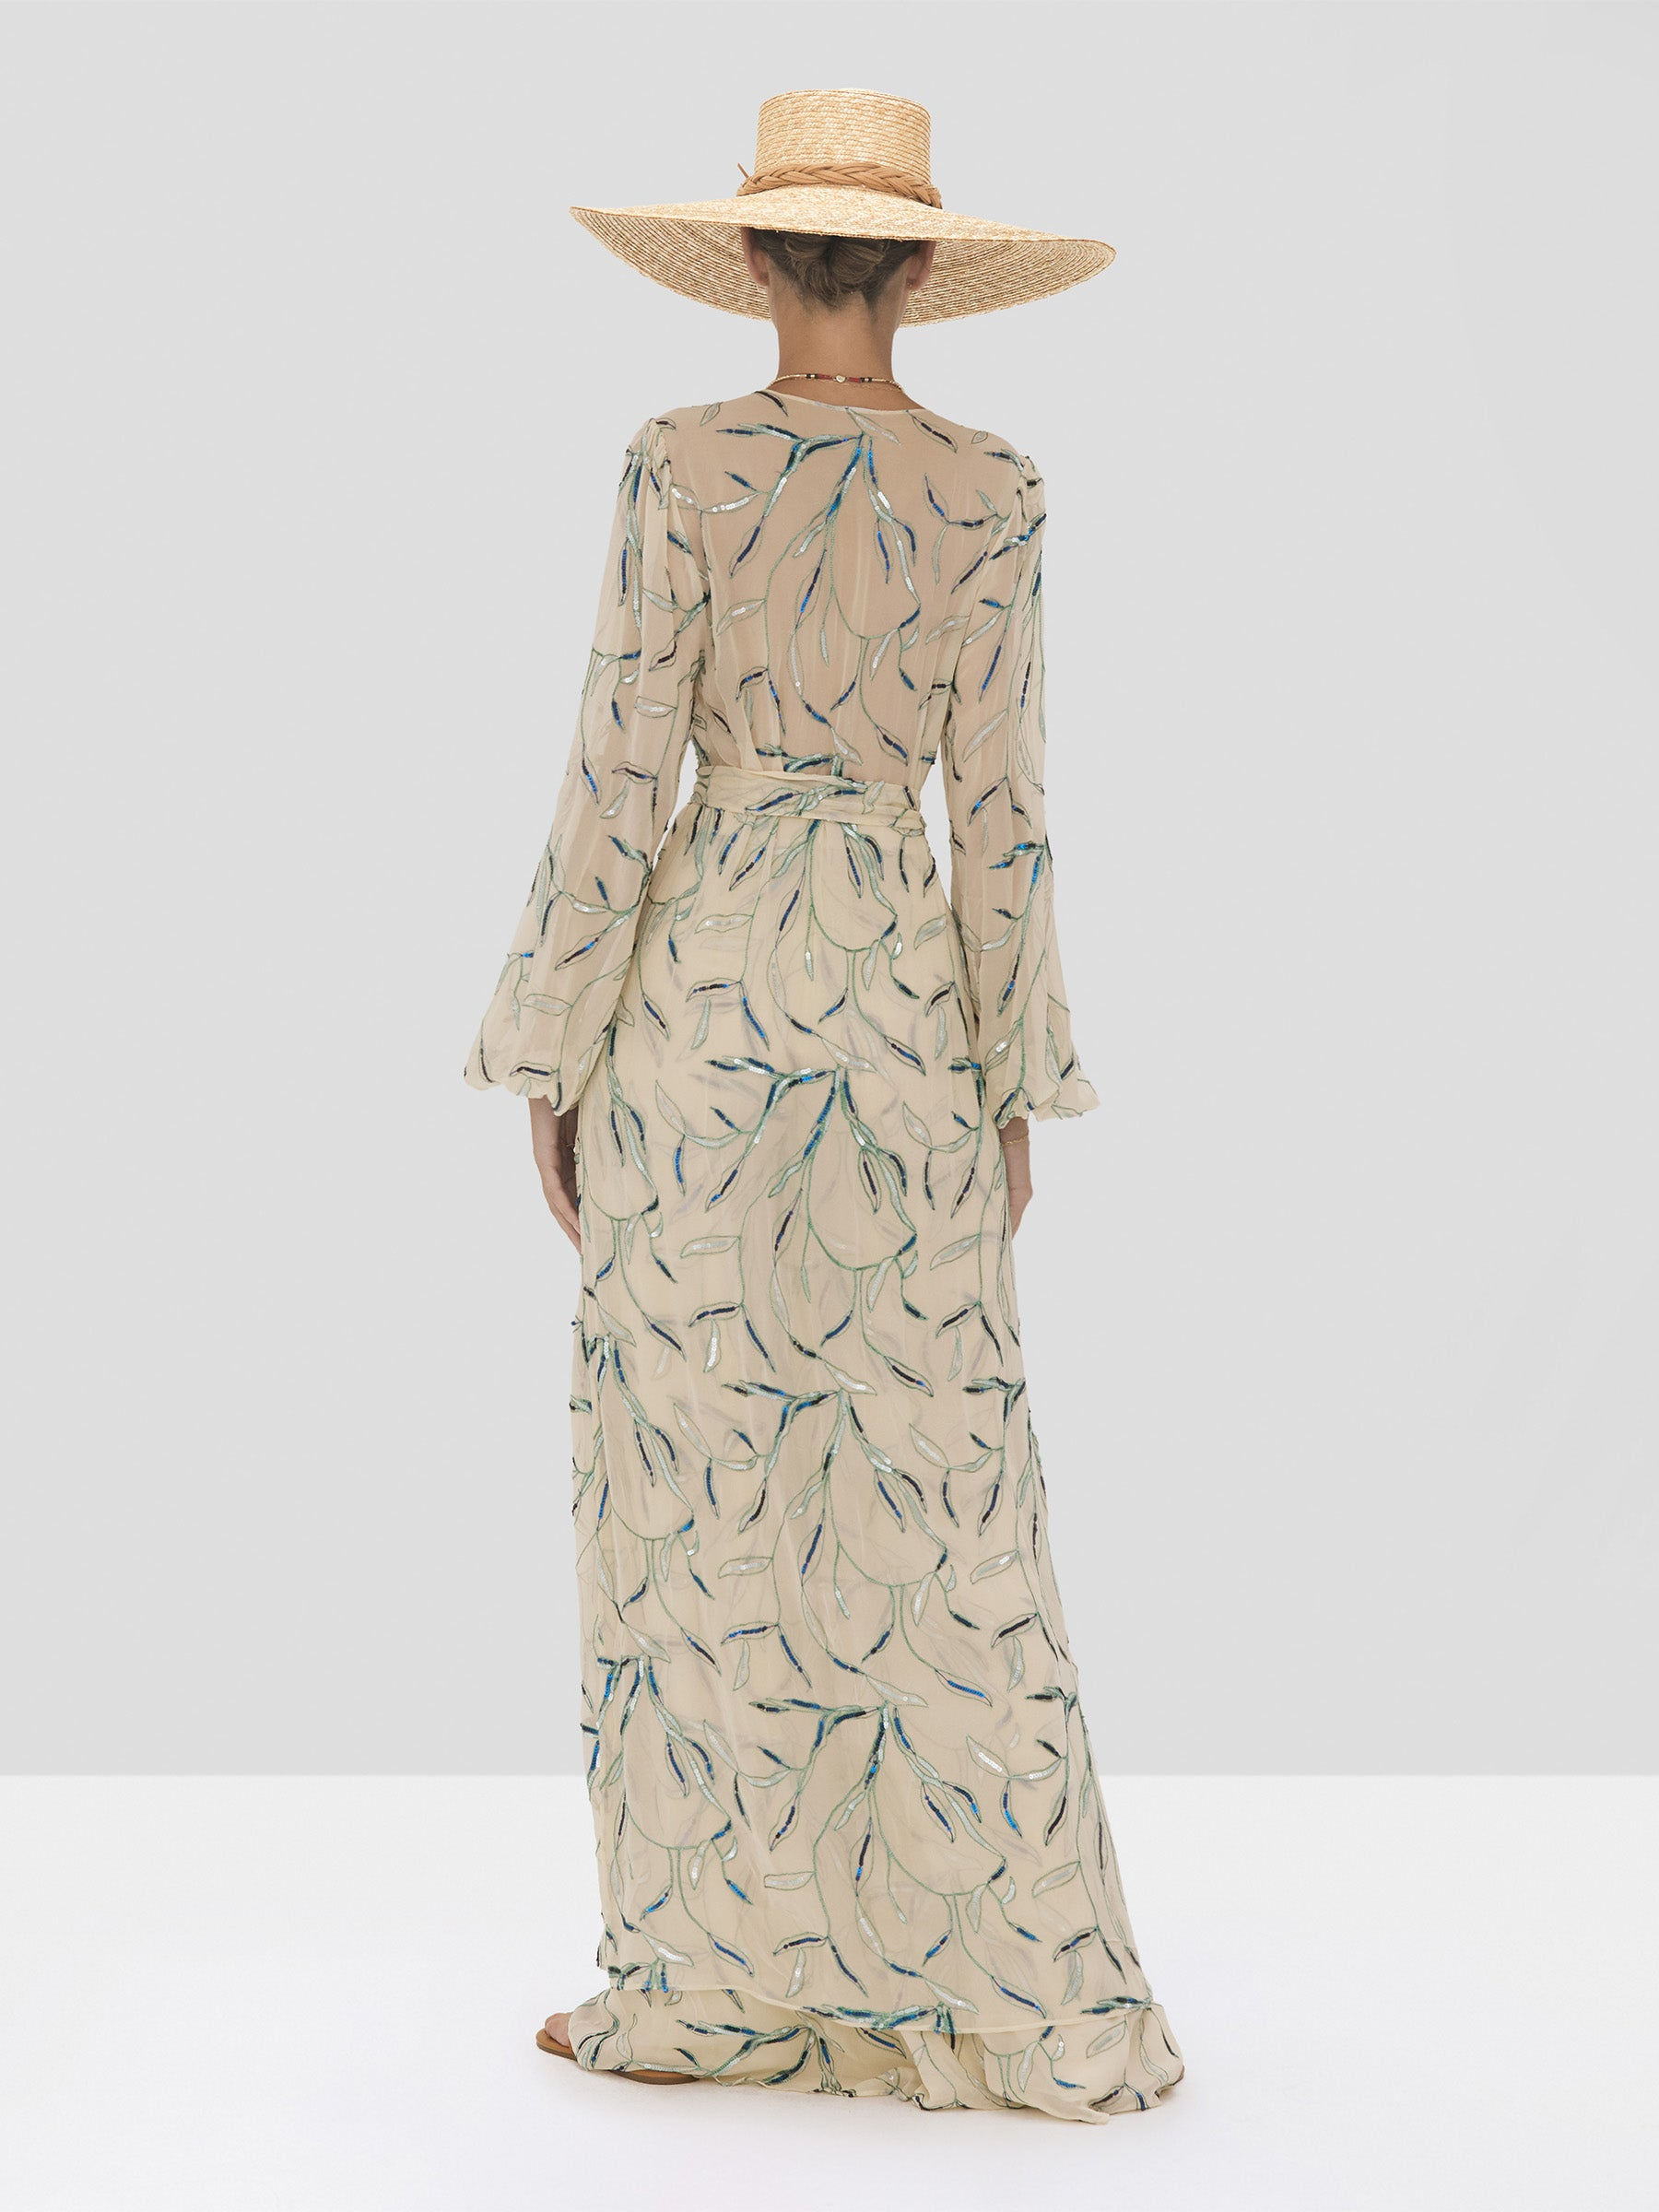 Alexis Fallen Pant and Amaia Kaftan in Tan Sequin Embroidery from the Spring Summer 2020 Collection - Rear View